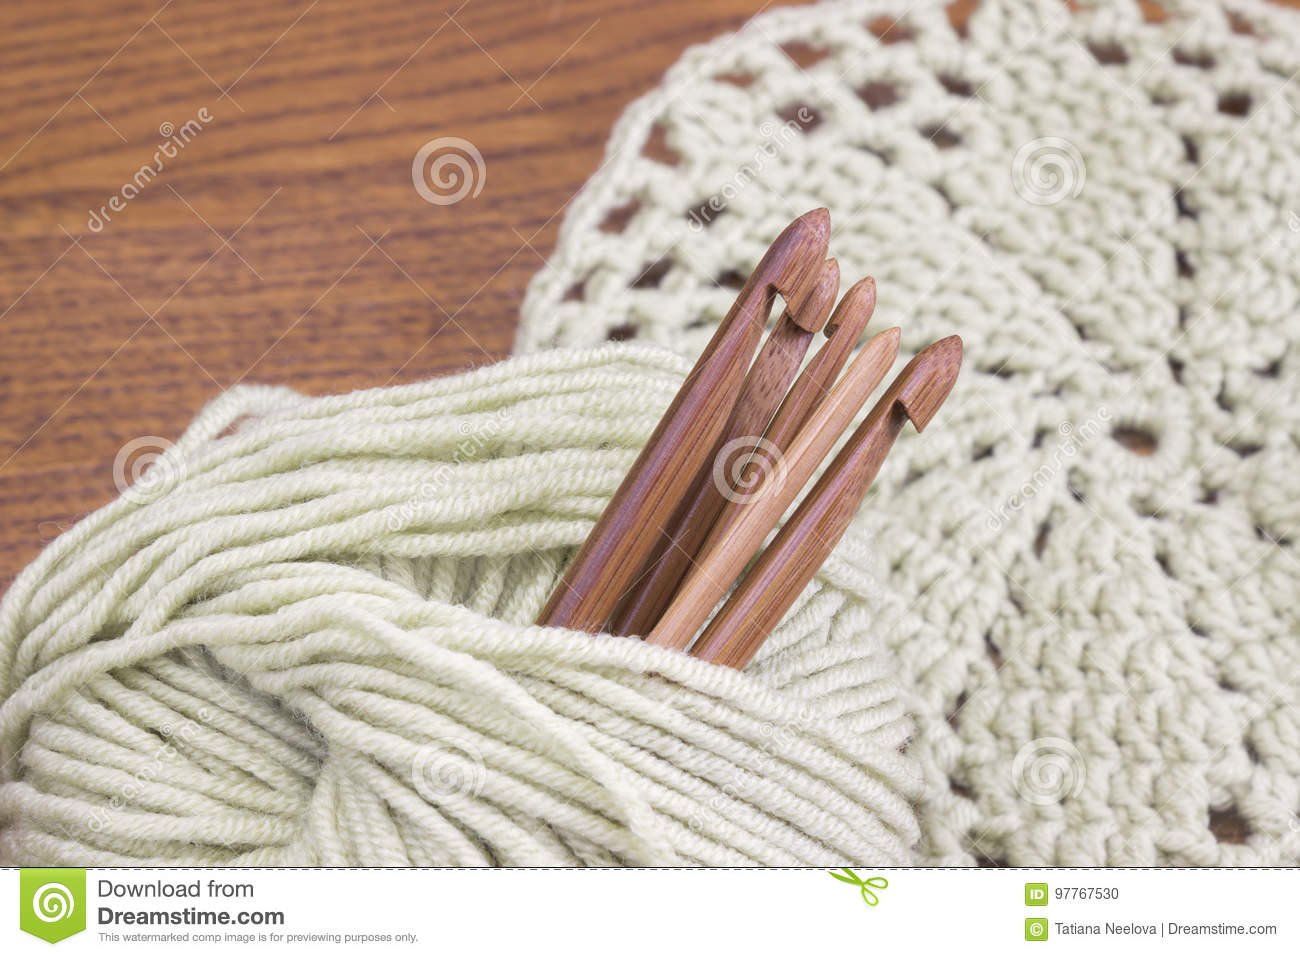 Wooden natural bamboo crochet hooks, doily and yarn ball on the table. Creative work place for homemade crafts. Top view.